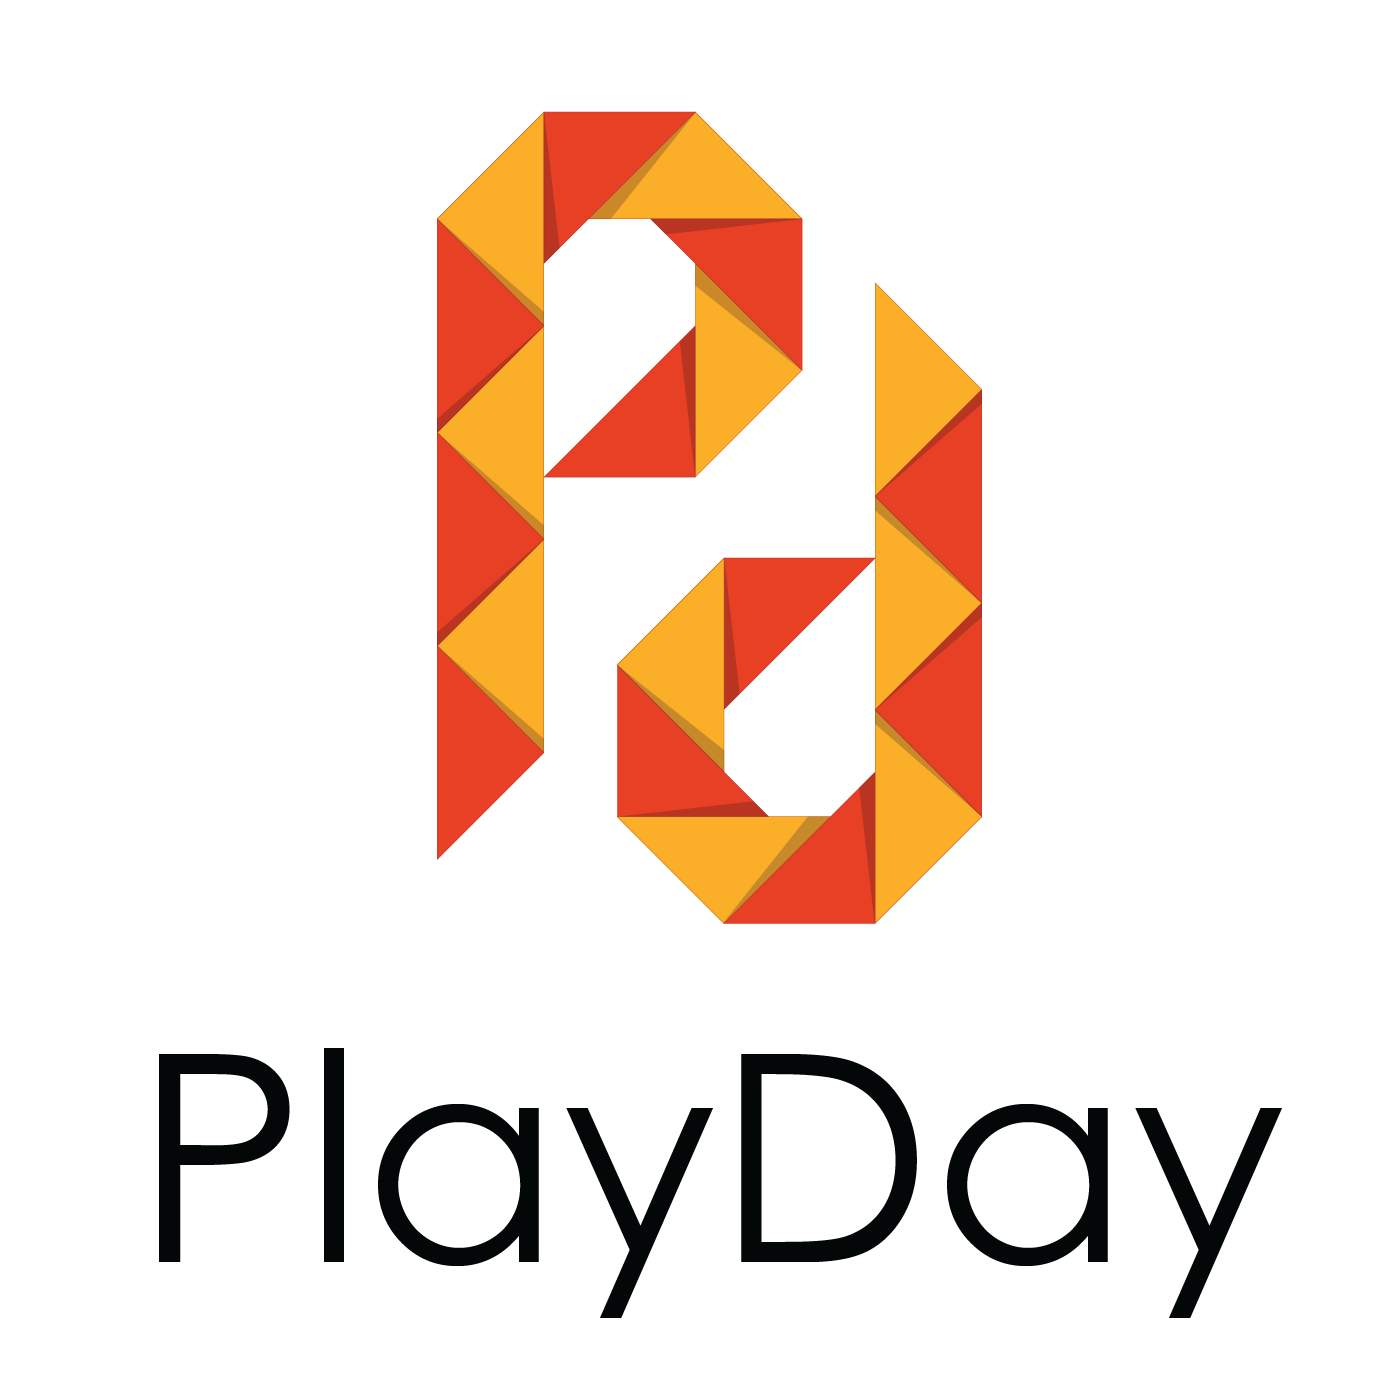 PlayDay event agency